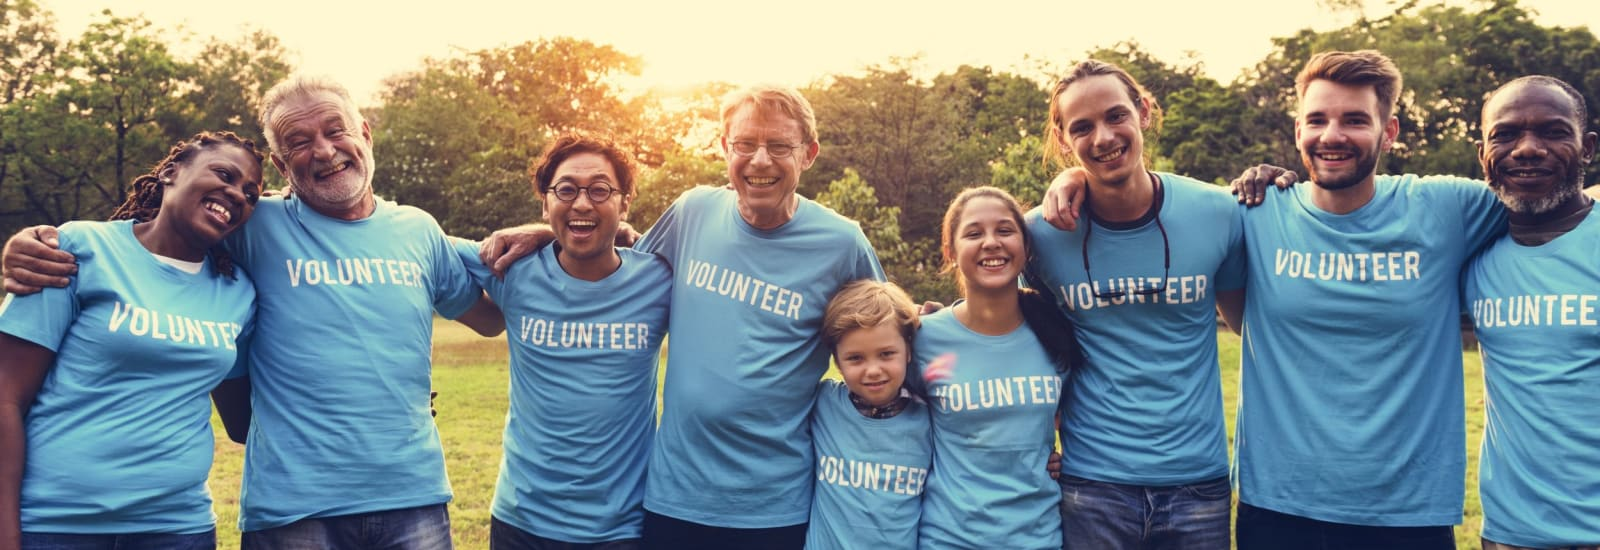 featured-volunteering-roles